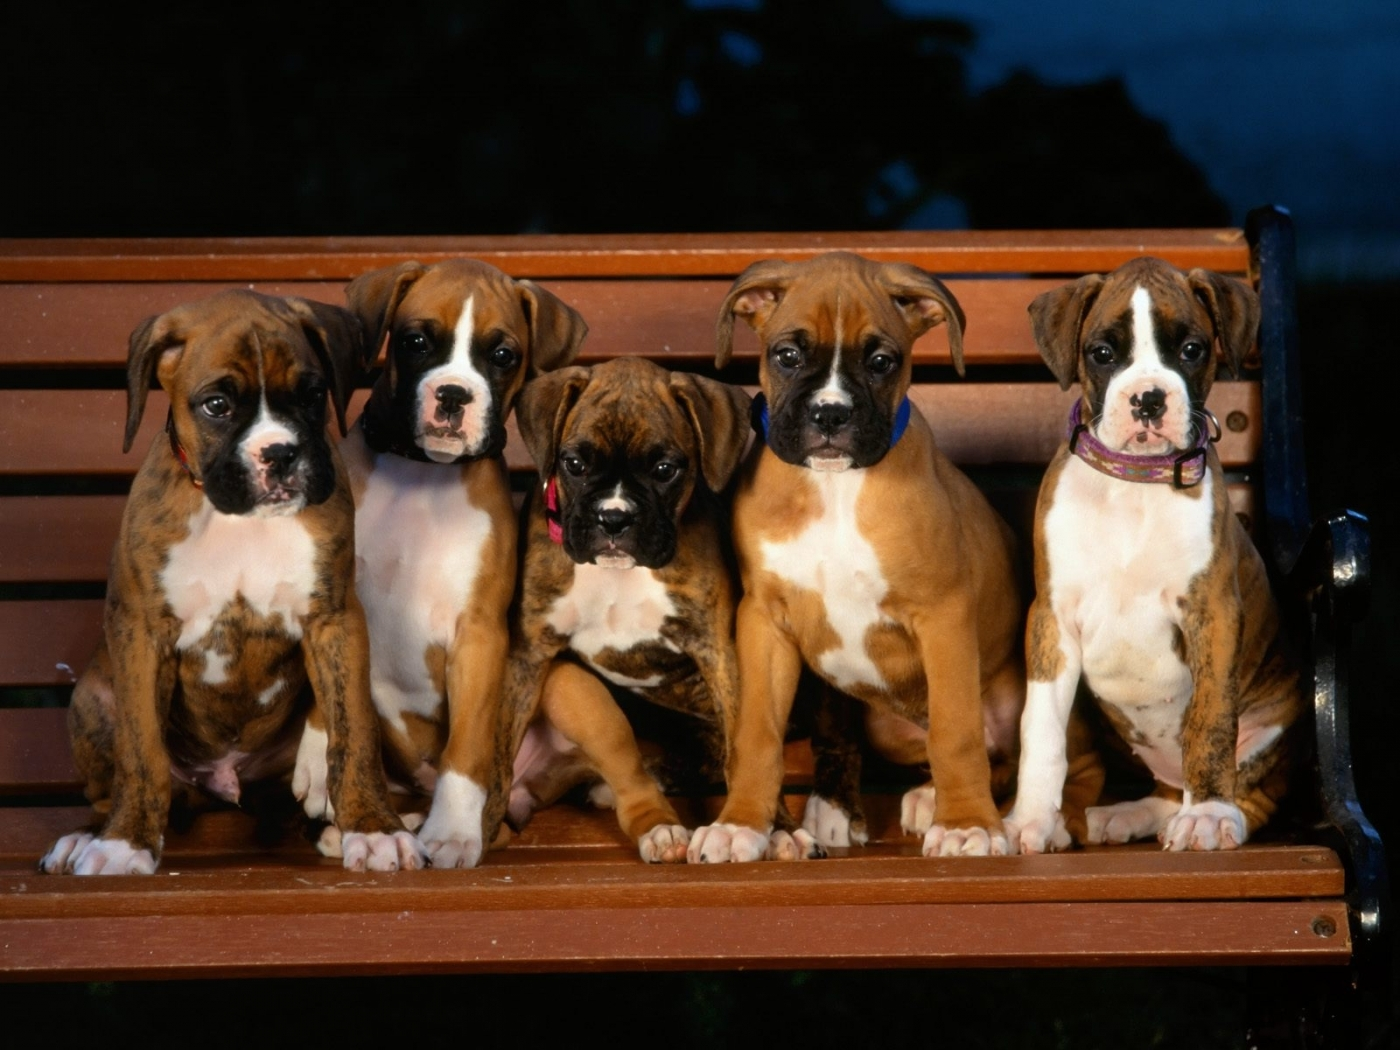 43031 download wallpaper Animals, Dogs screensavers and pictures for free